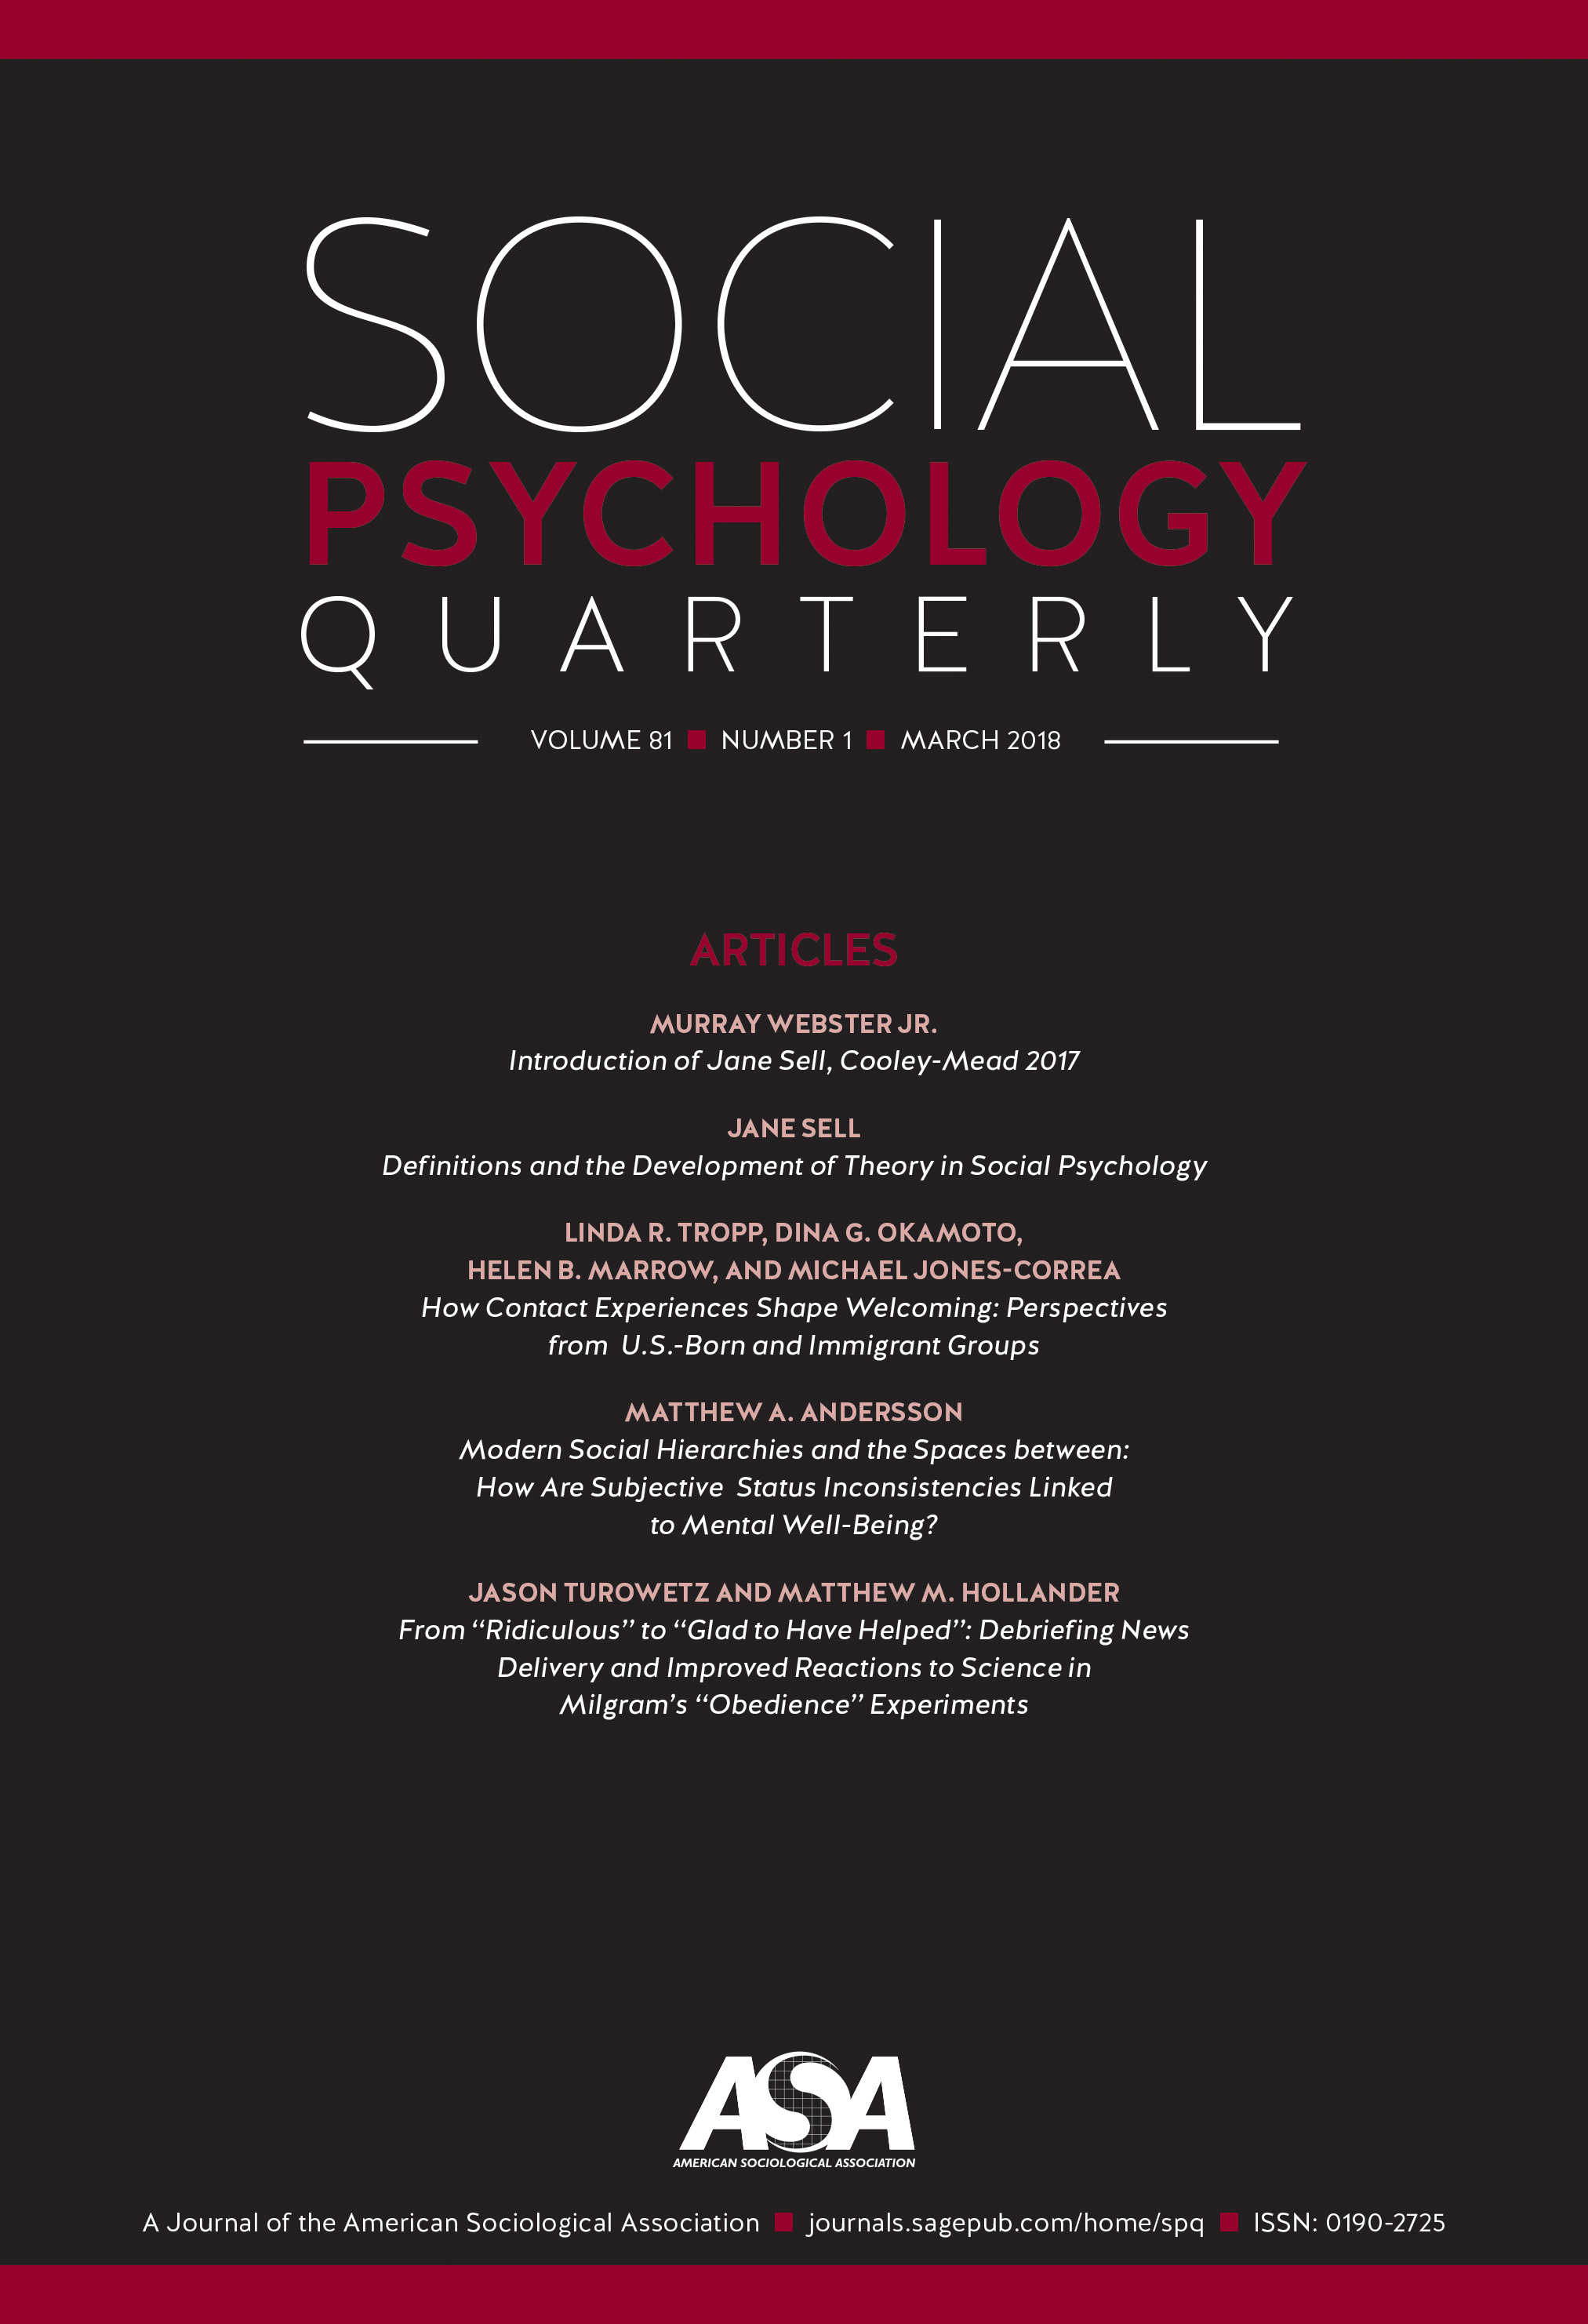 Cover of Social Psychology Quarterly 2018